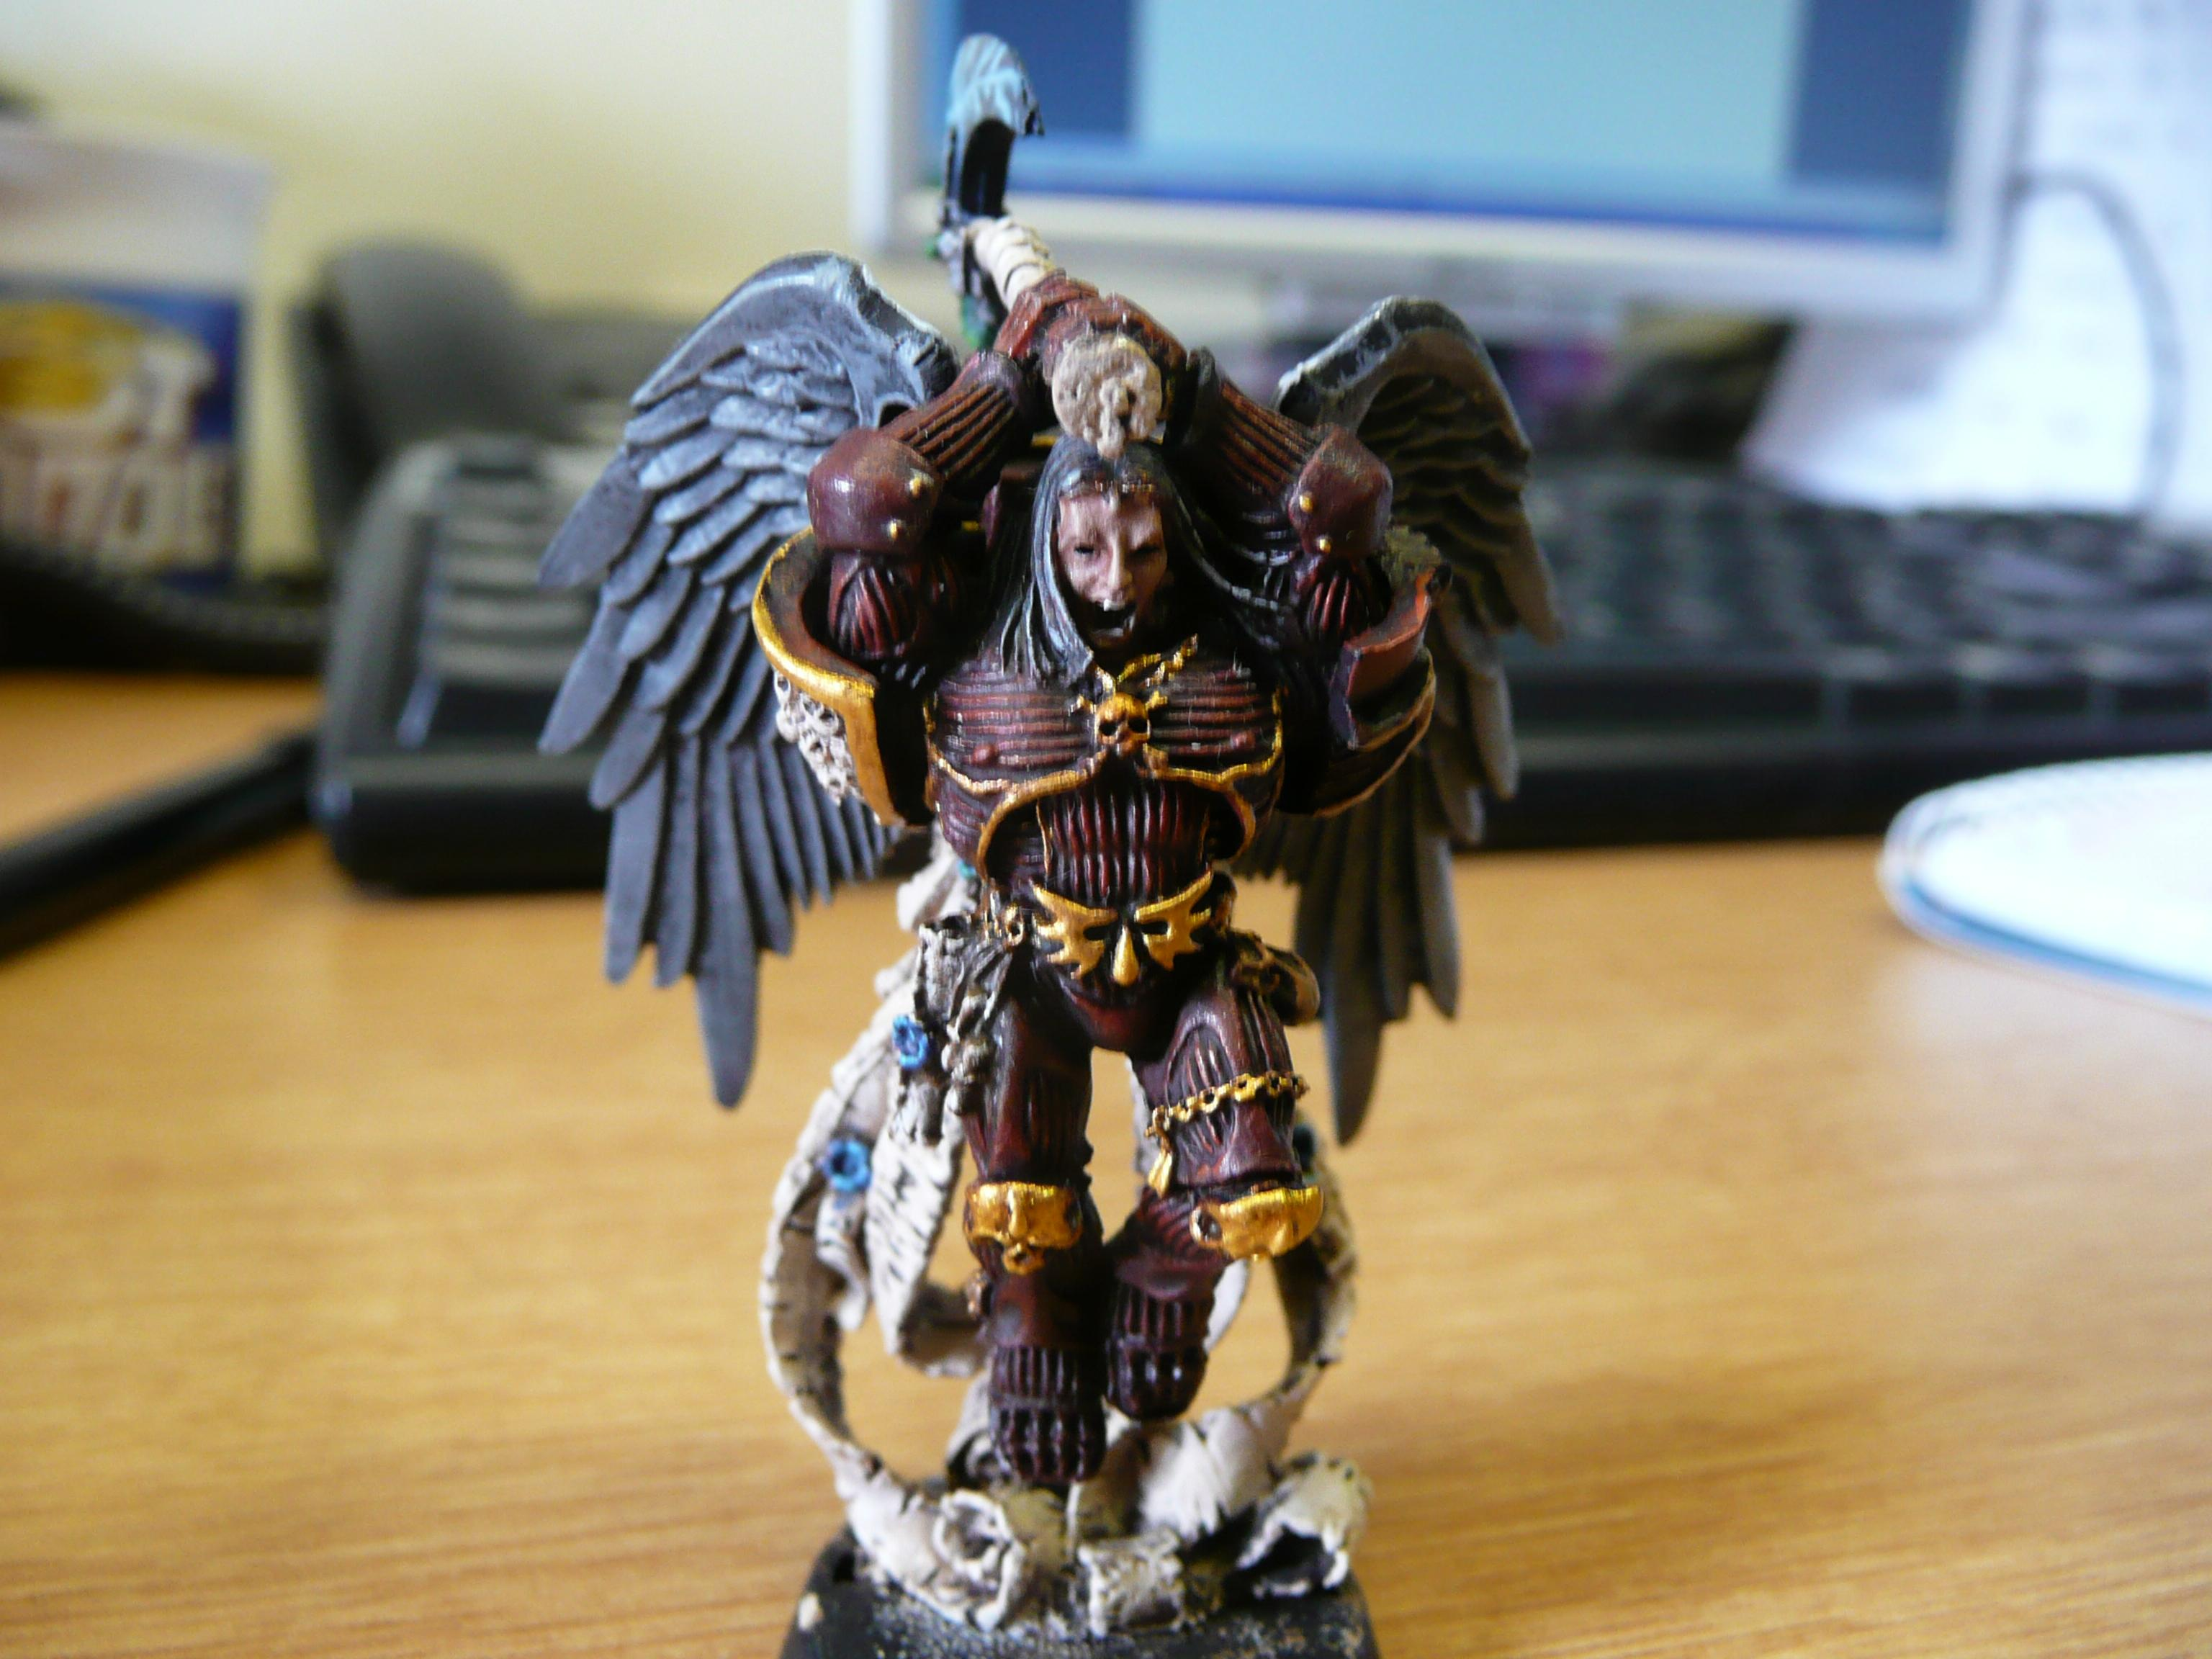 Astaroth, Astorath, Blood Angels, Chaplain, Characters, Space Marines, Warhammer 40,000